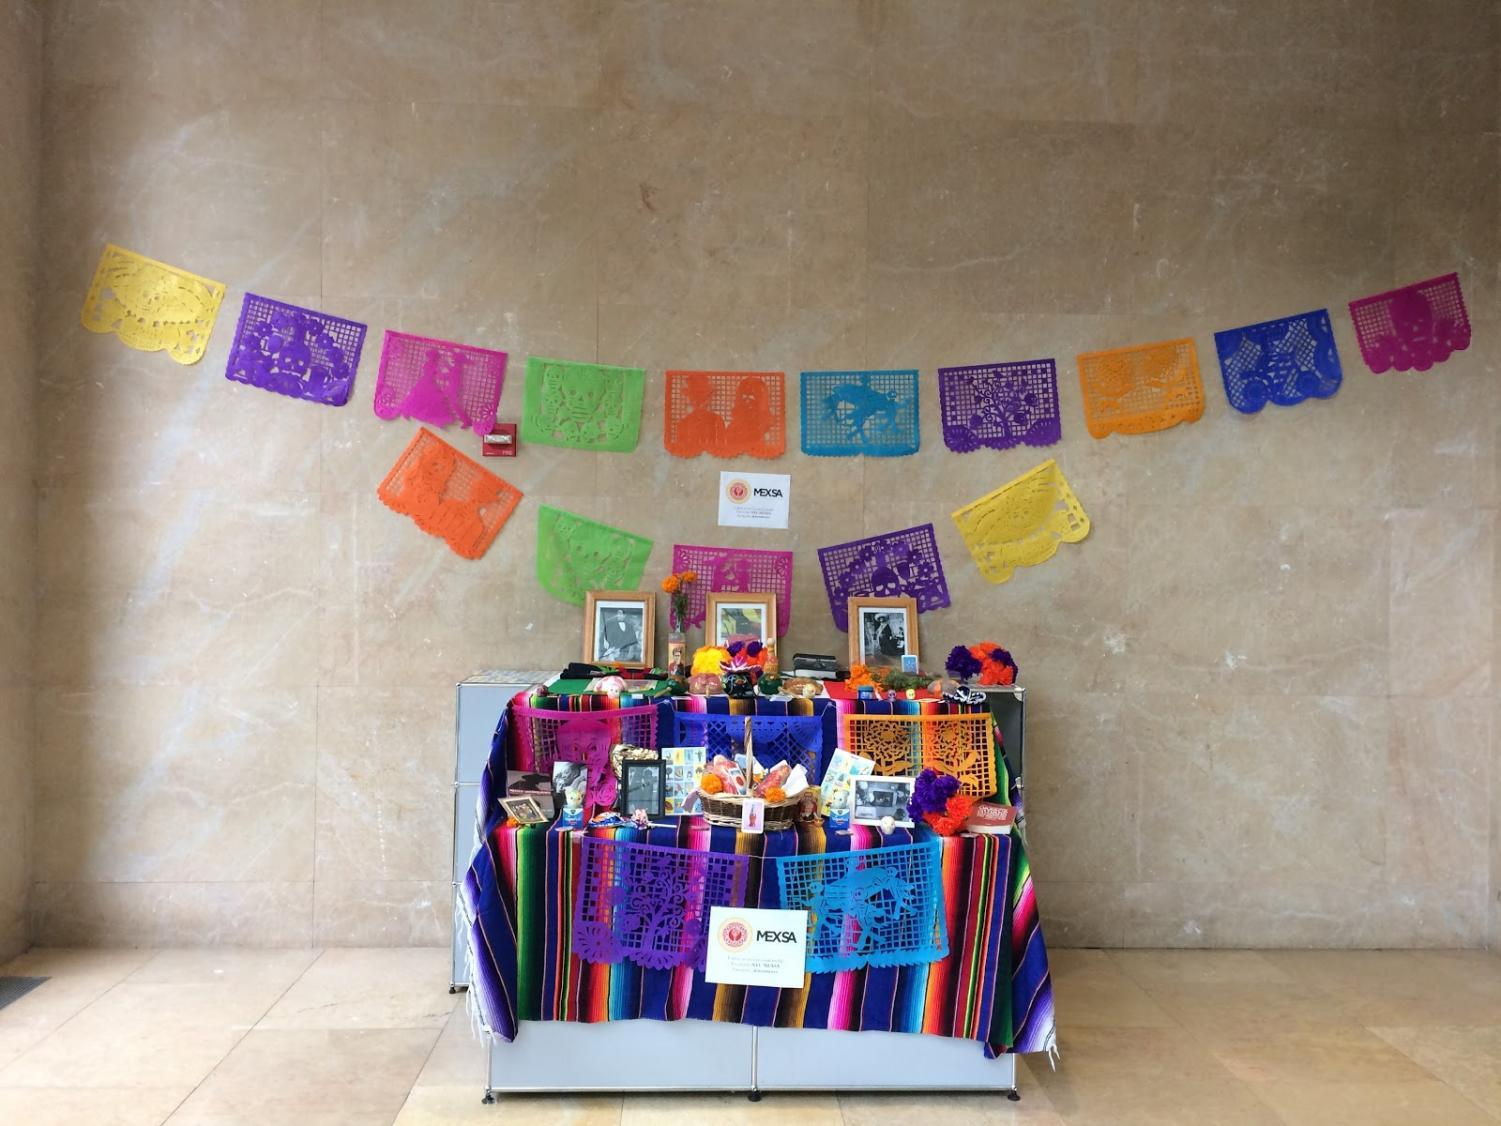 NYU's Mexican Student Association to celebrate Día de los Muertos, or Day of the Dead  from Oct. 31 to Nov. 2 in the lobby of Kimmel Center for University Life.